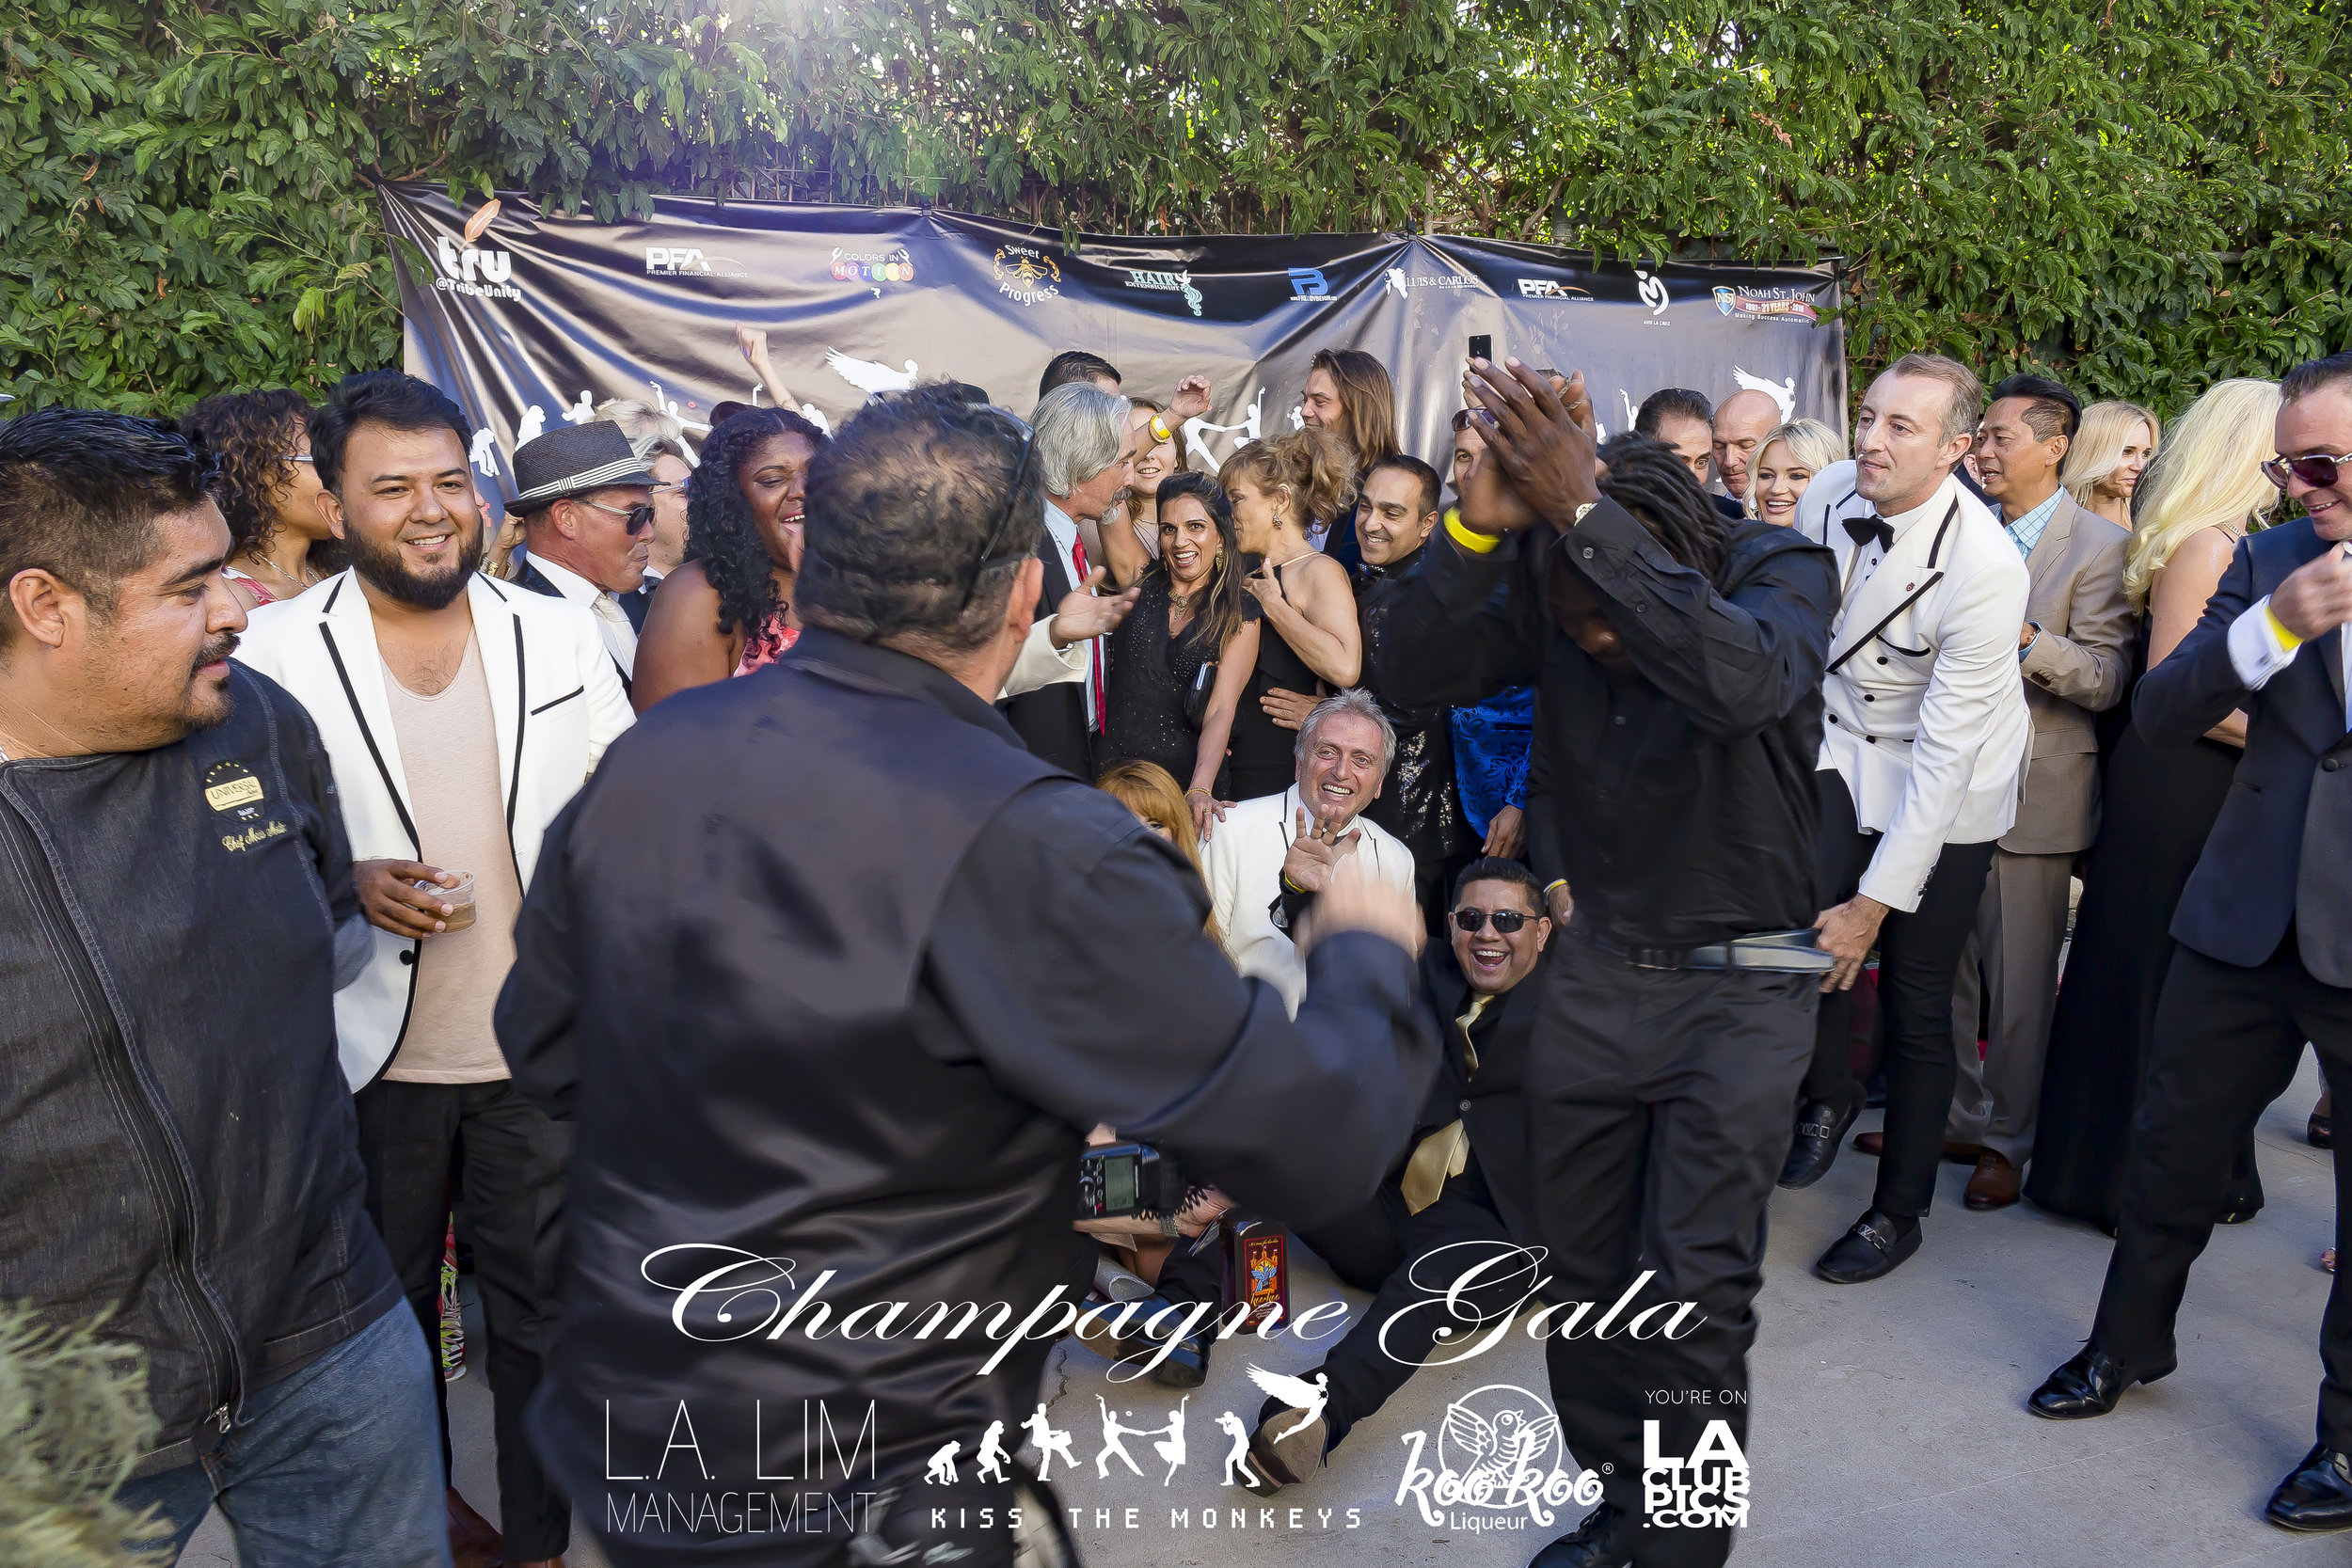 Kiss The Monkeys - Champagne Gala - 07-21-18_63.jpg